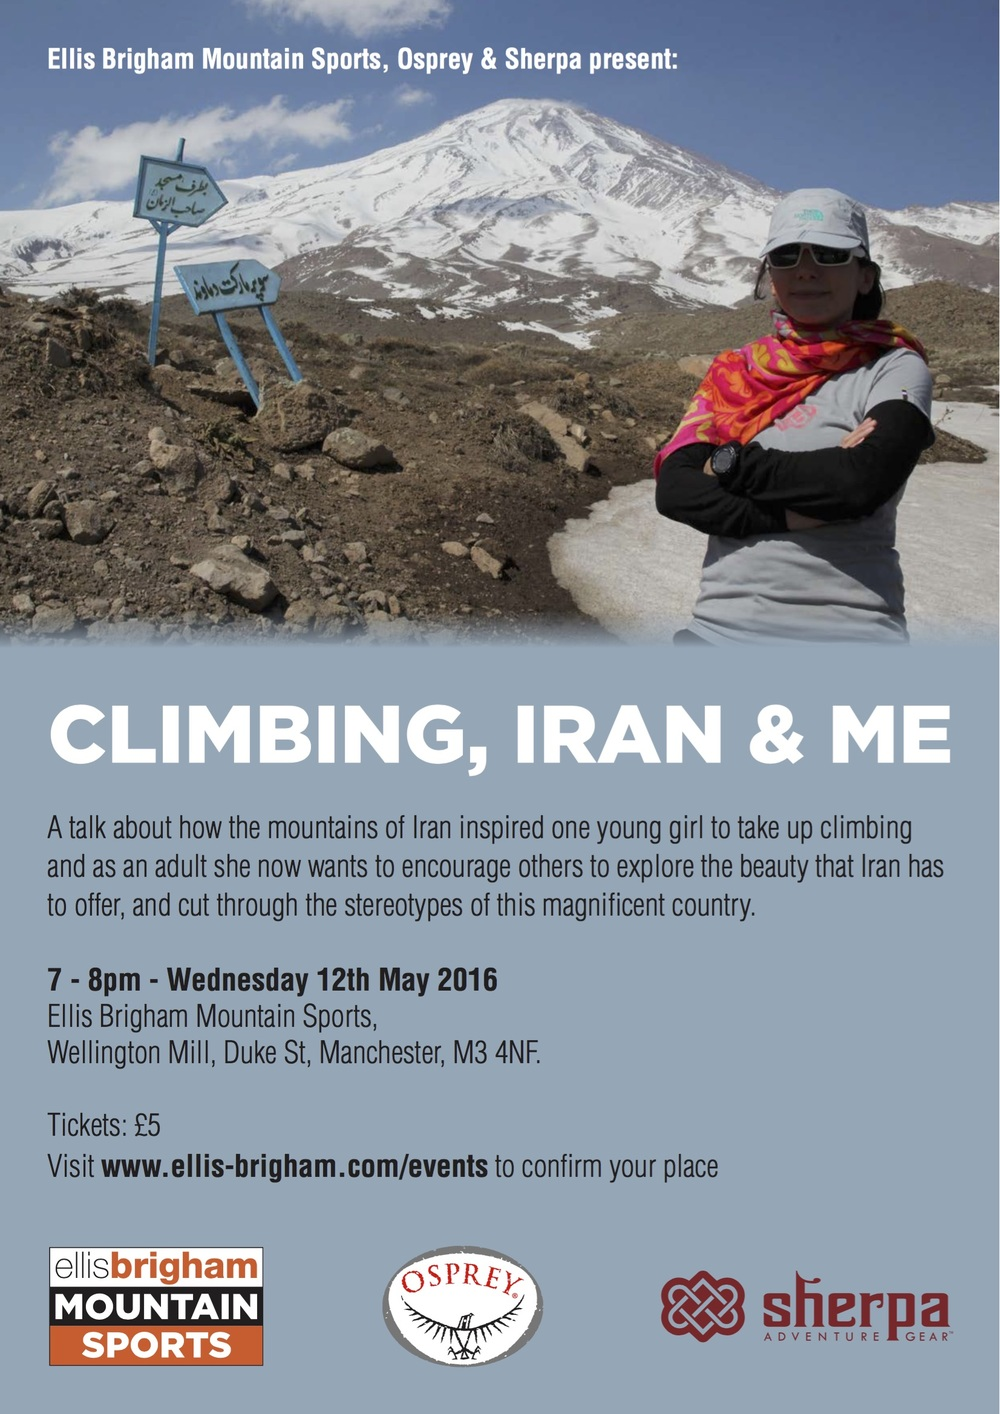 Climbing, Iran and Me A4 Event Poster 034 May 2016.jpg